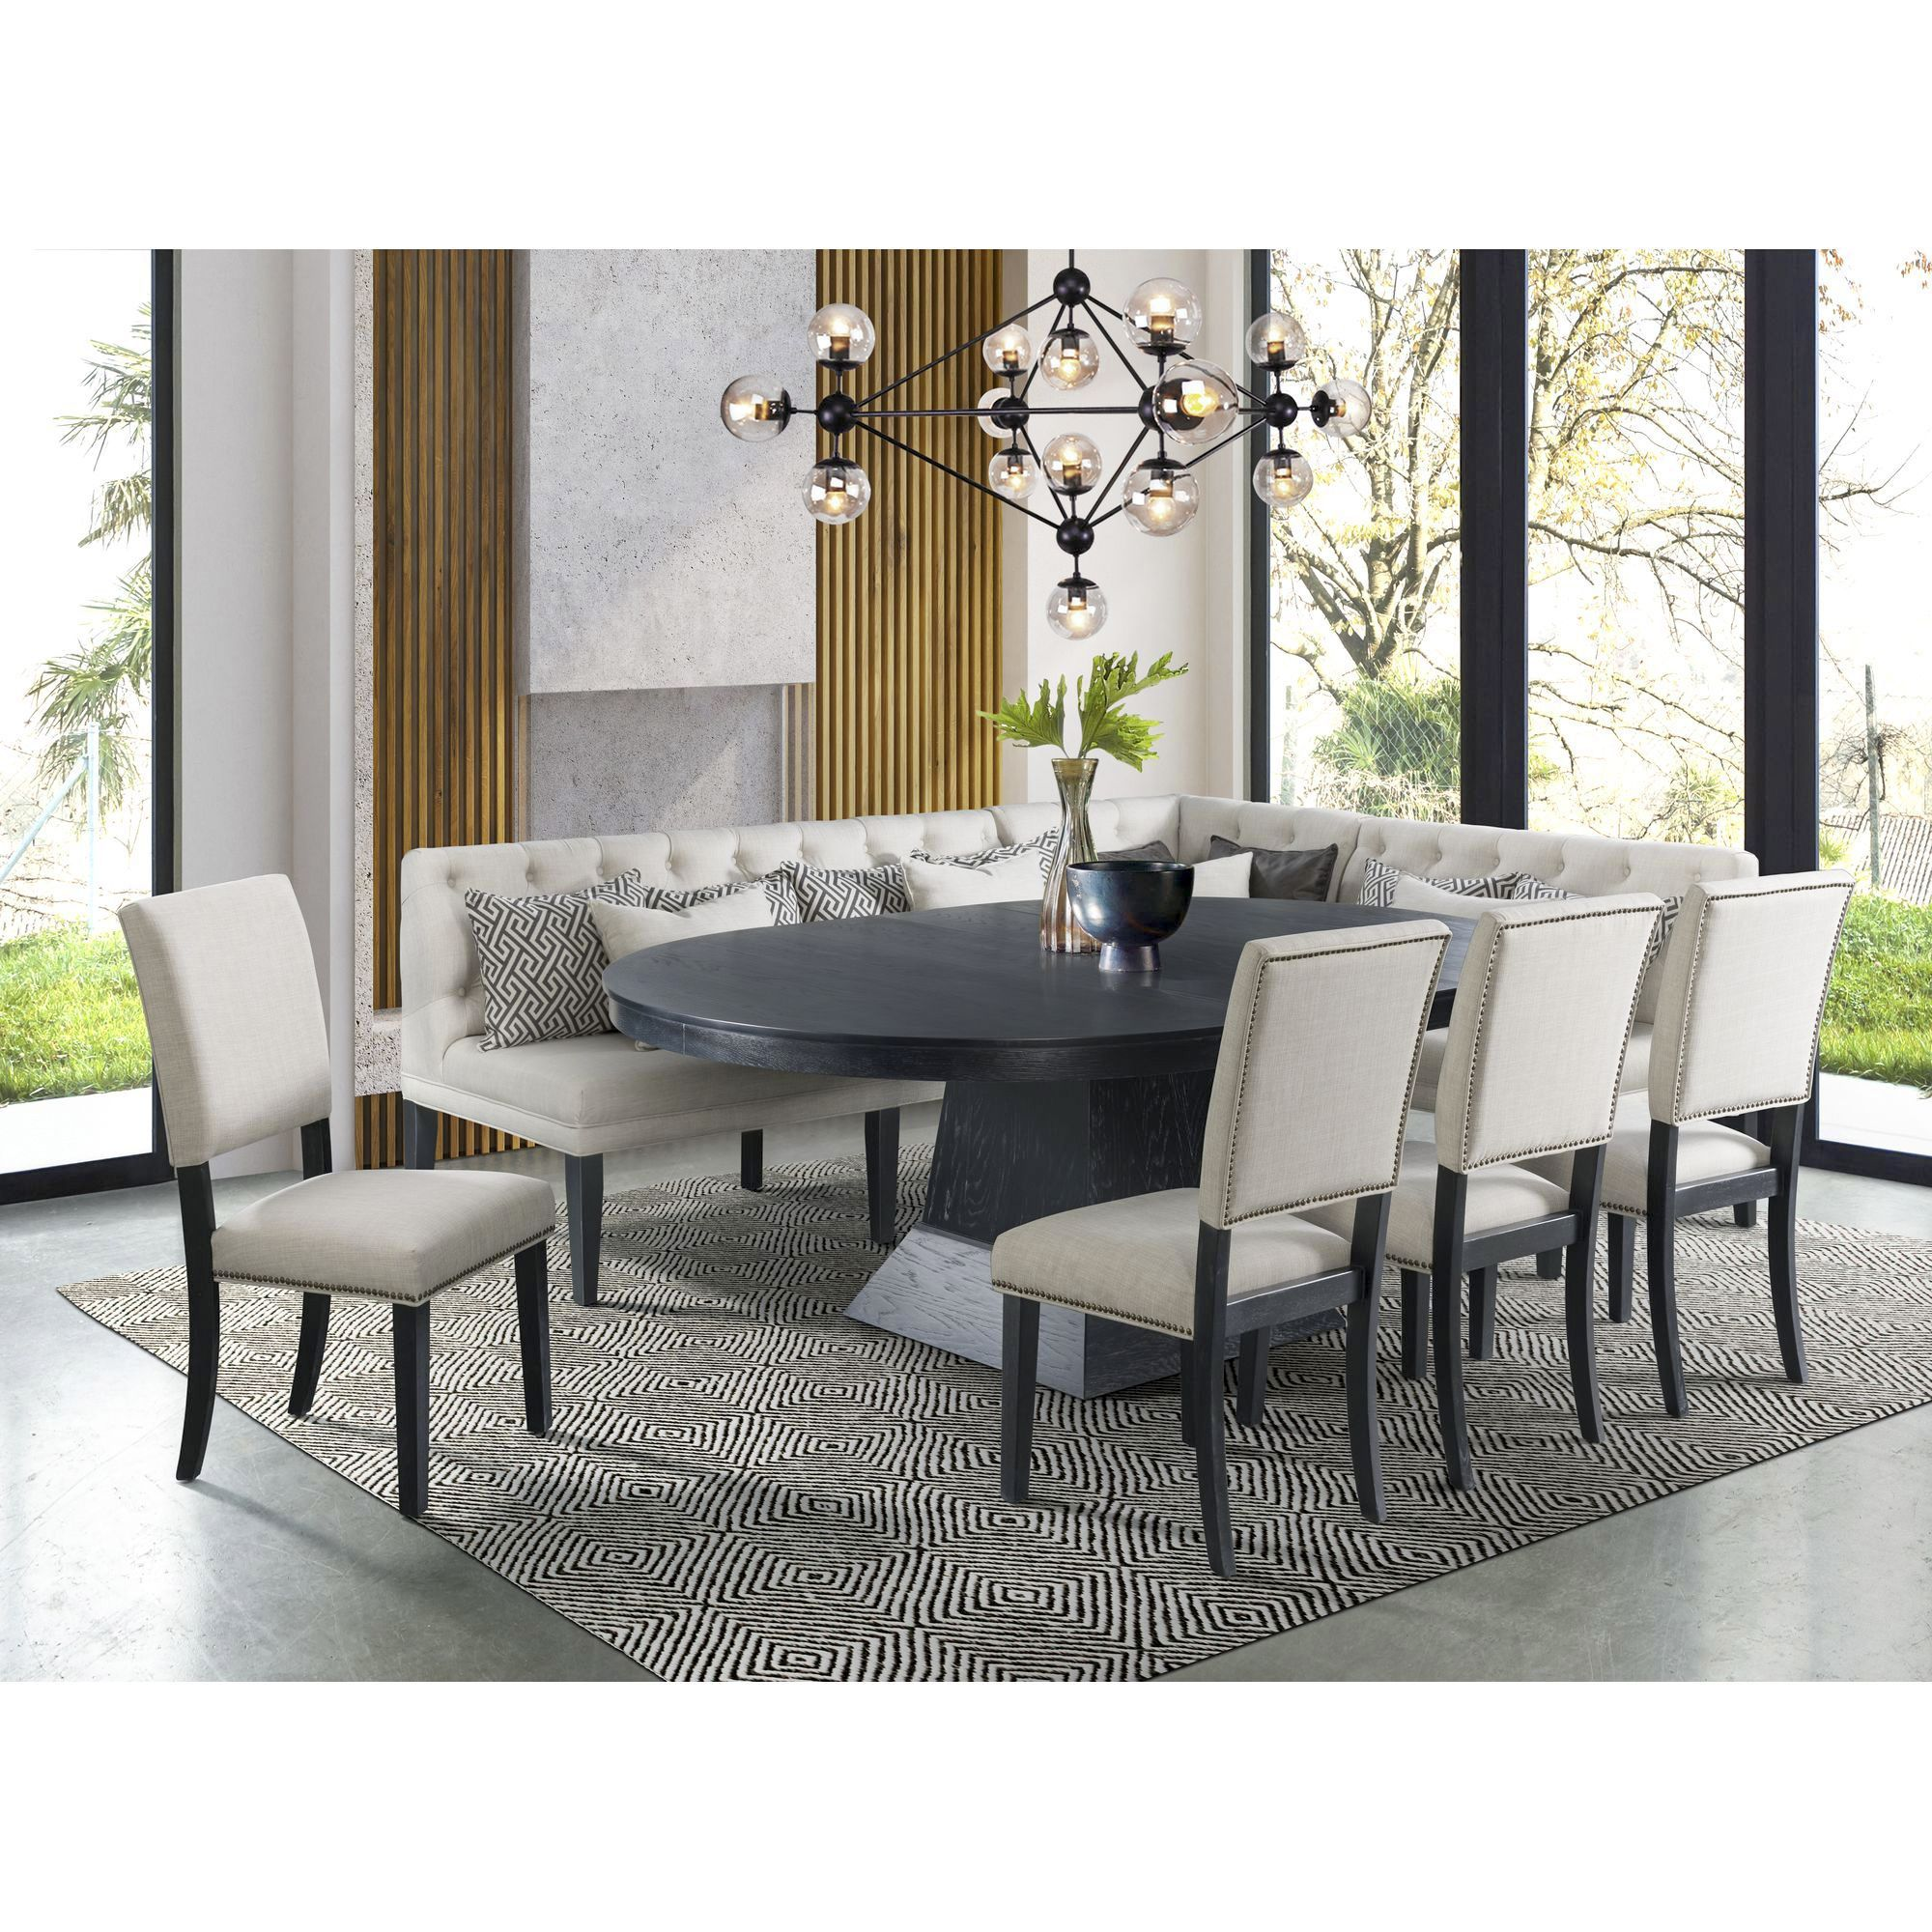 Picket House Dmd1408pc549 Furnishings Mara 8 Pc Dining Set Table Bjs Wholesale Club